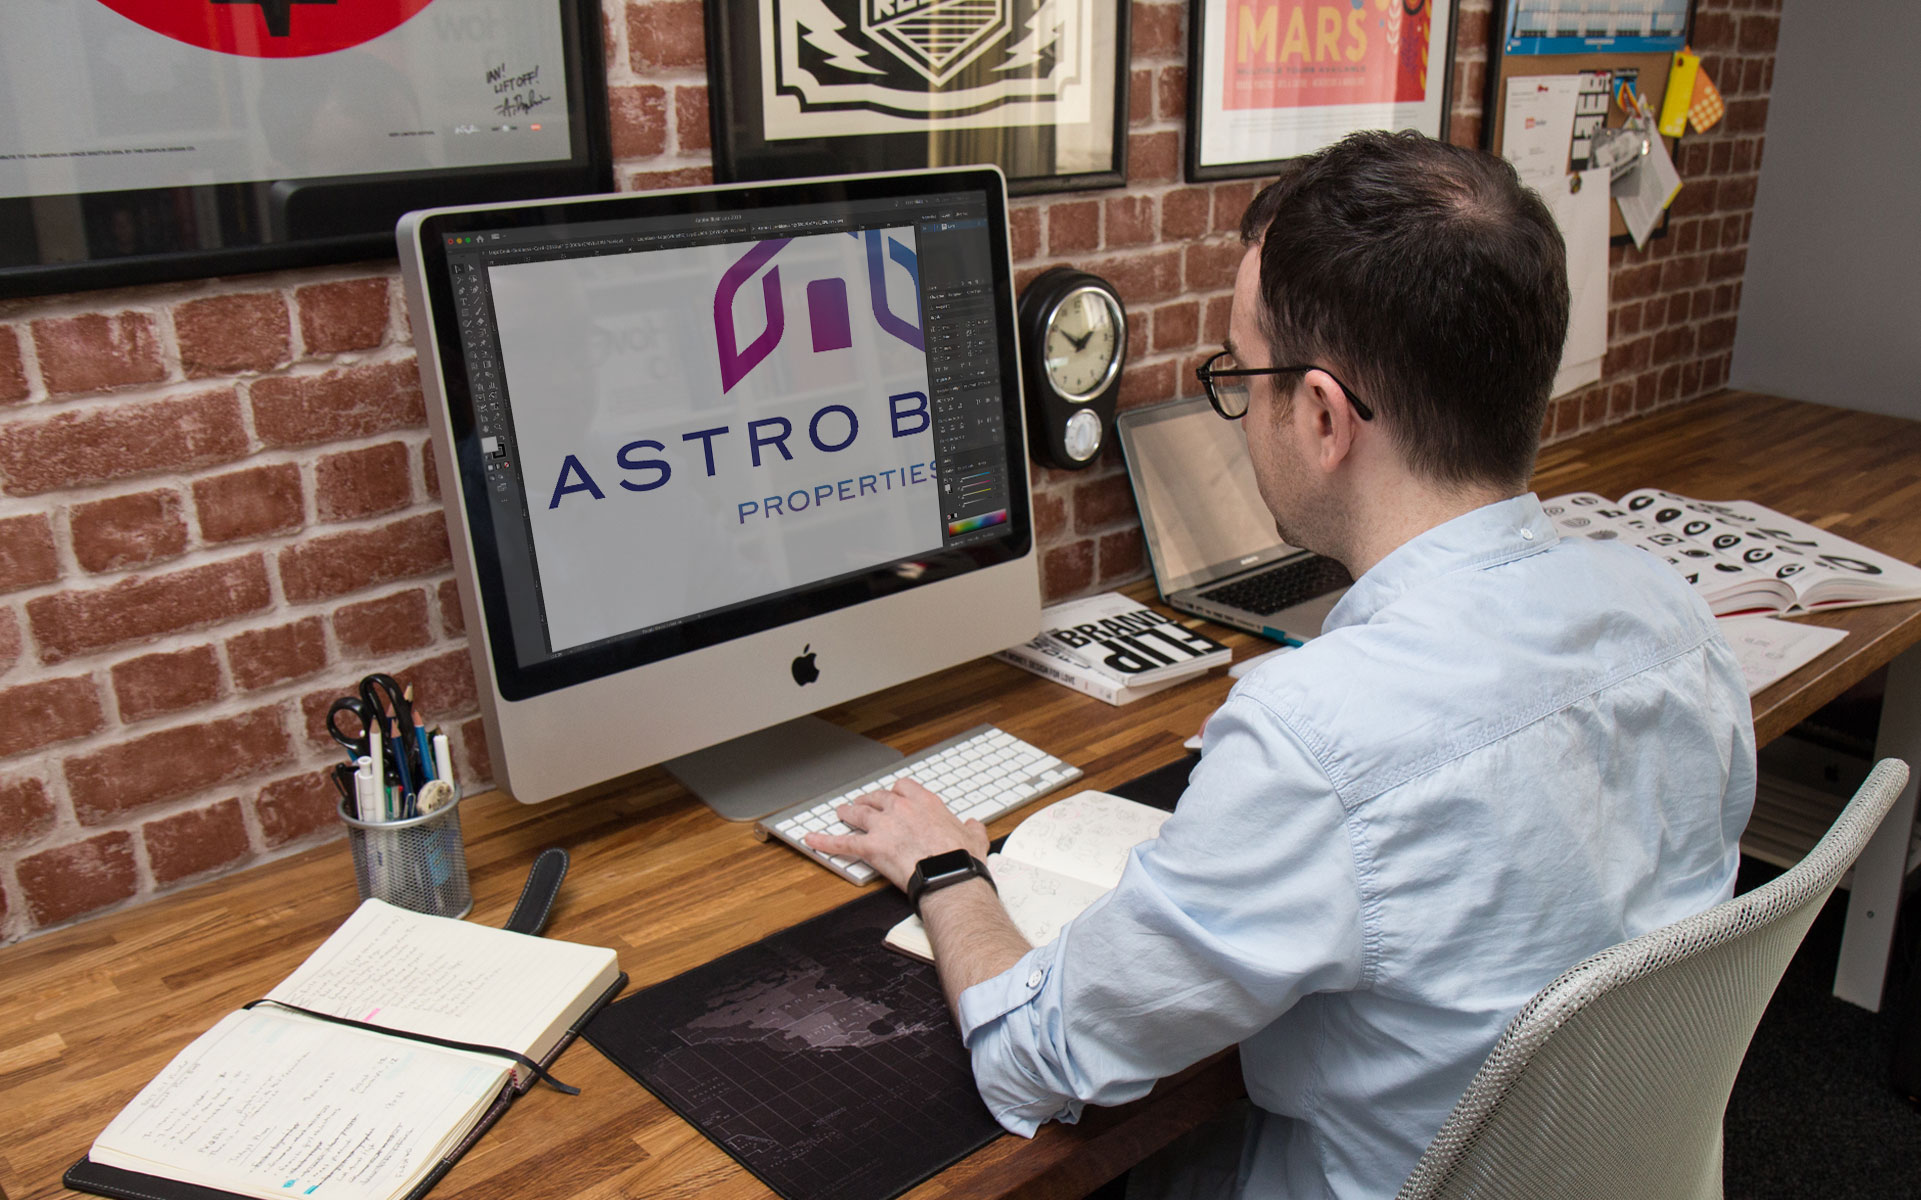 Ian Paget designing a logo in Adobe Illustrator